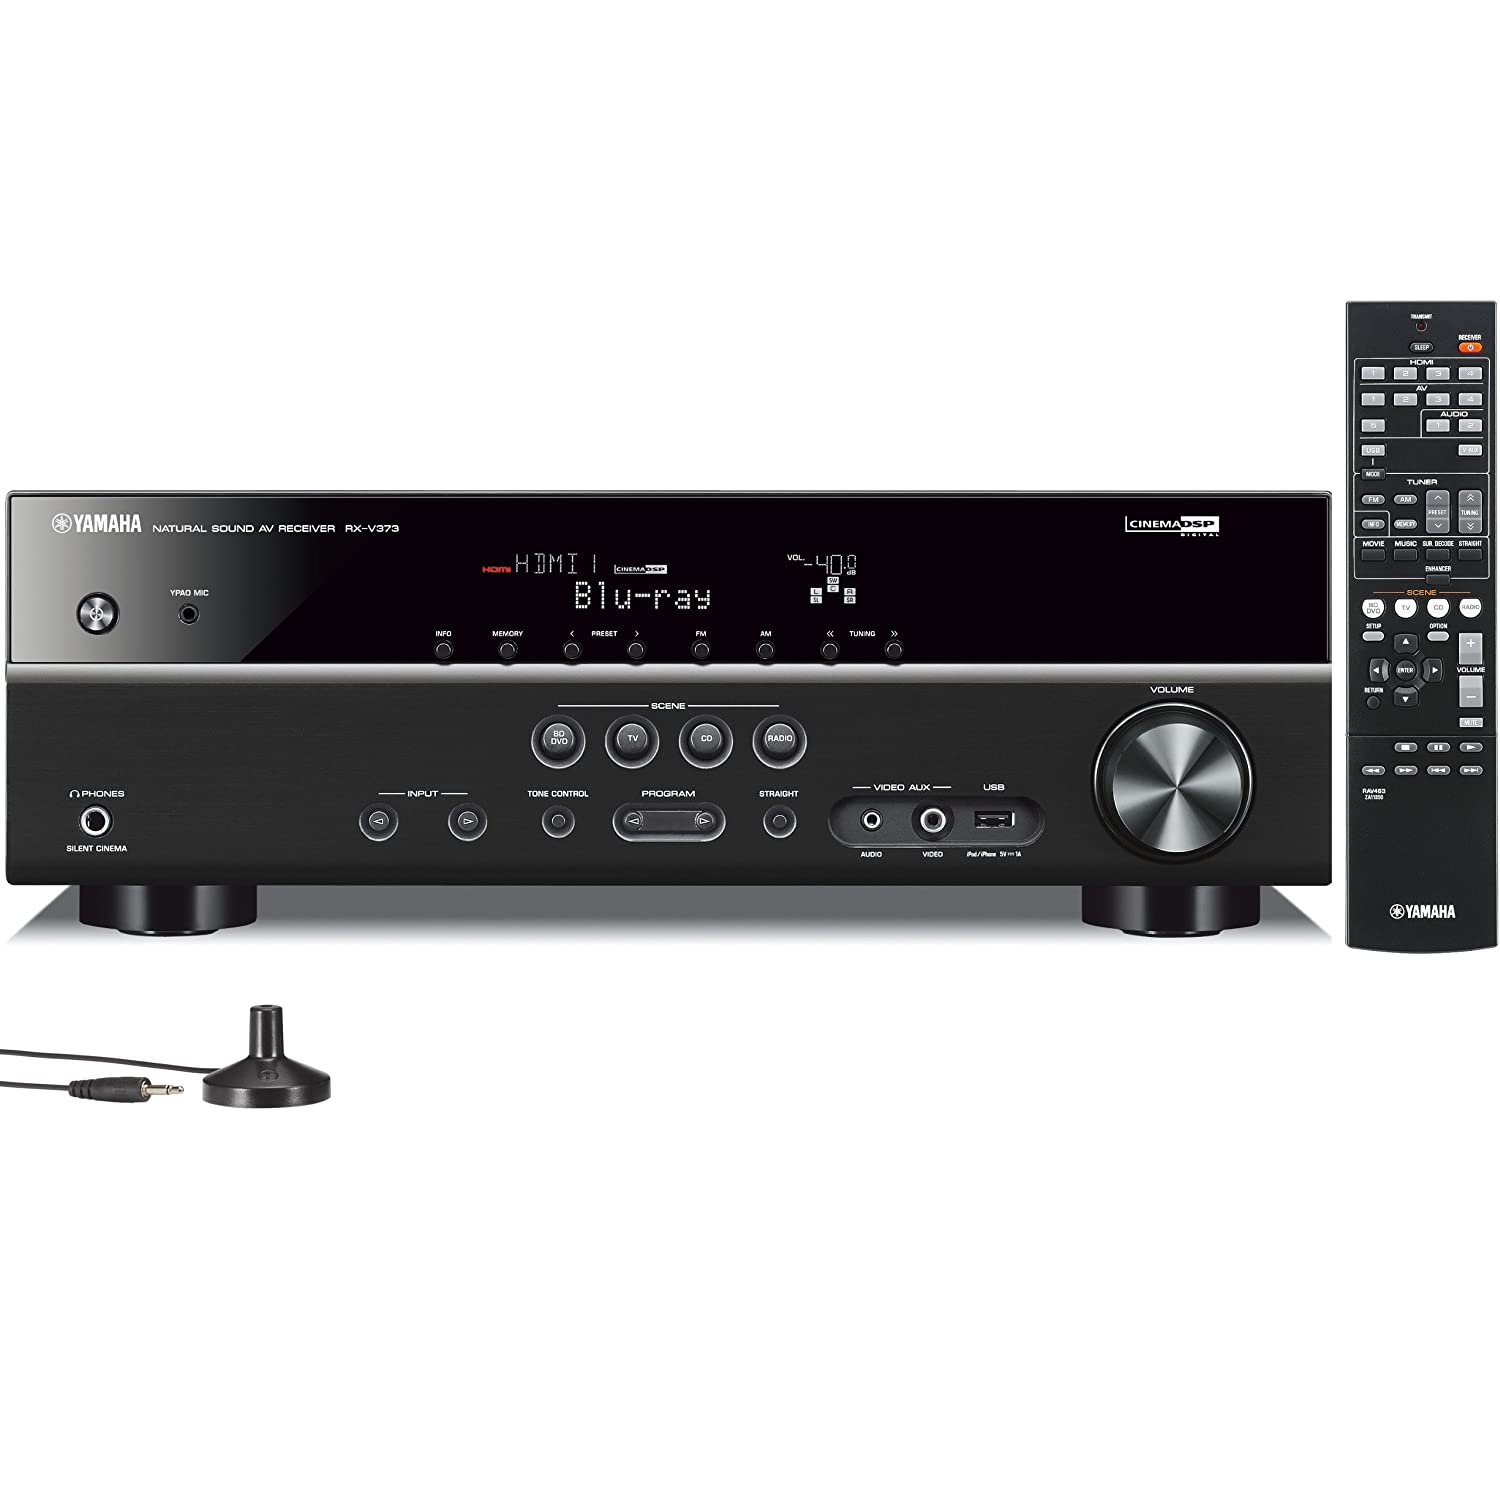 Yamaha RX-V373 5.1-Channel AV Receiver $176.95